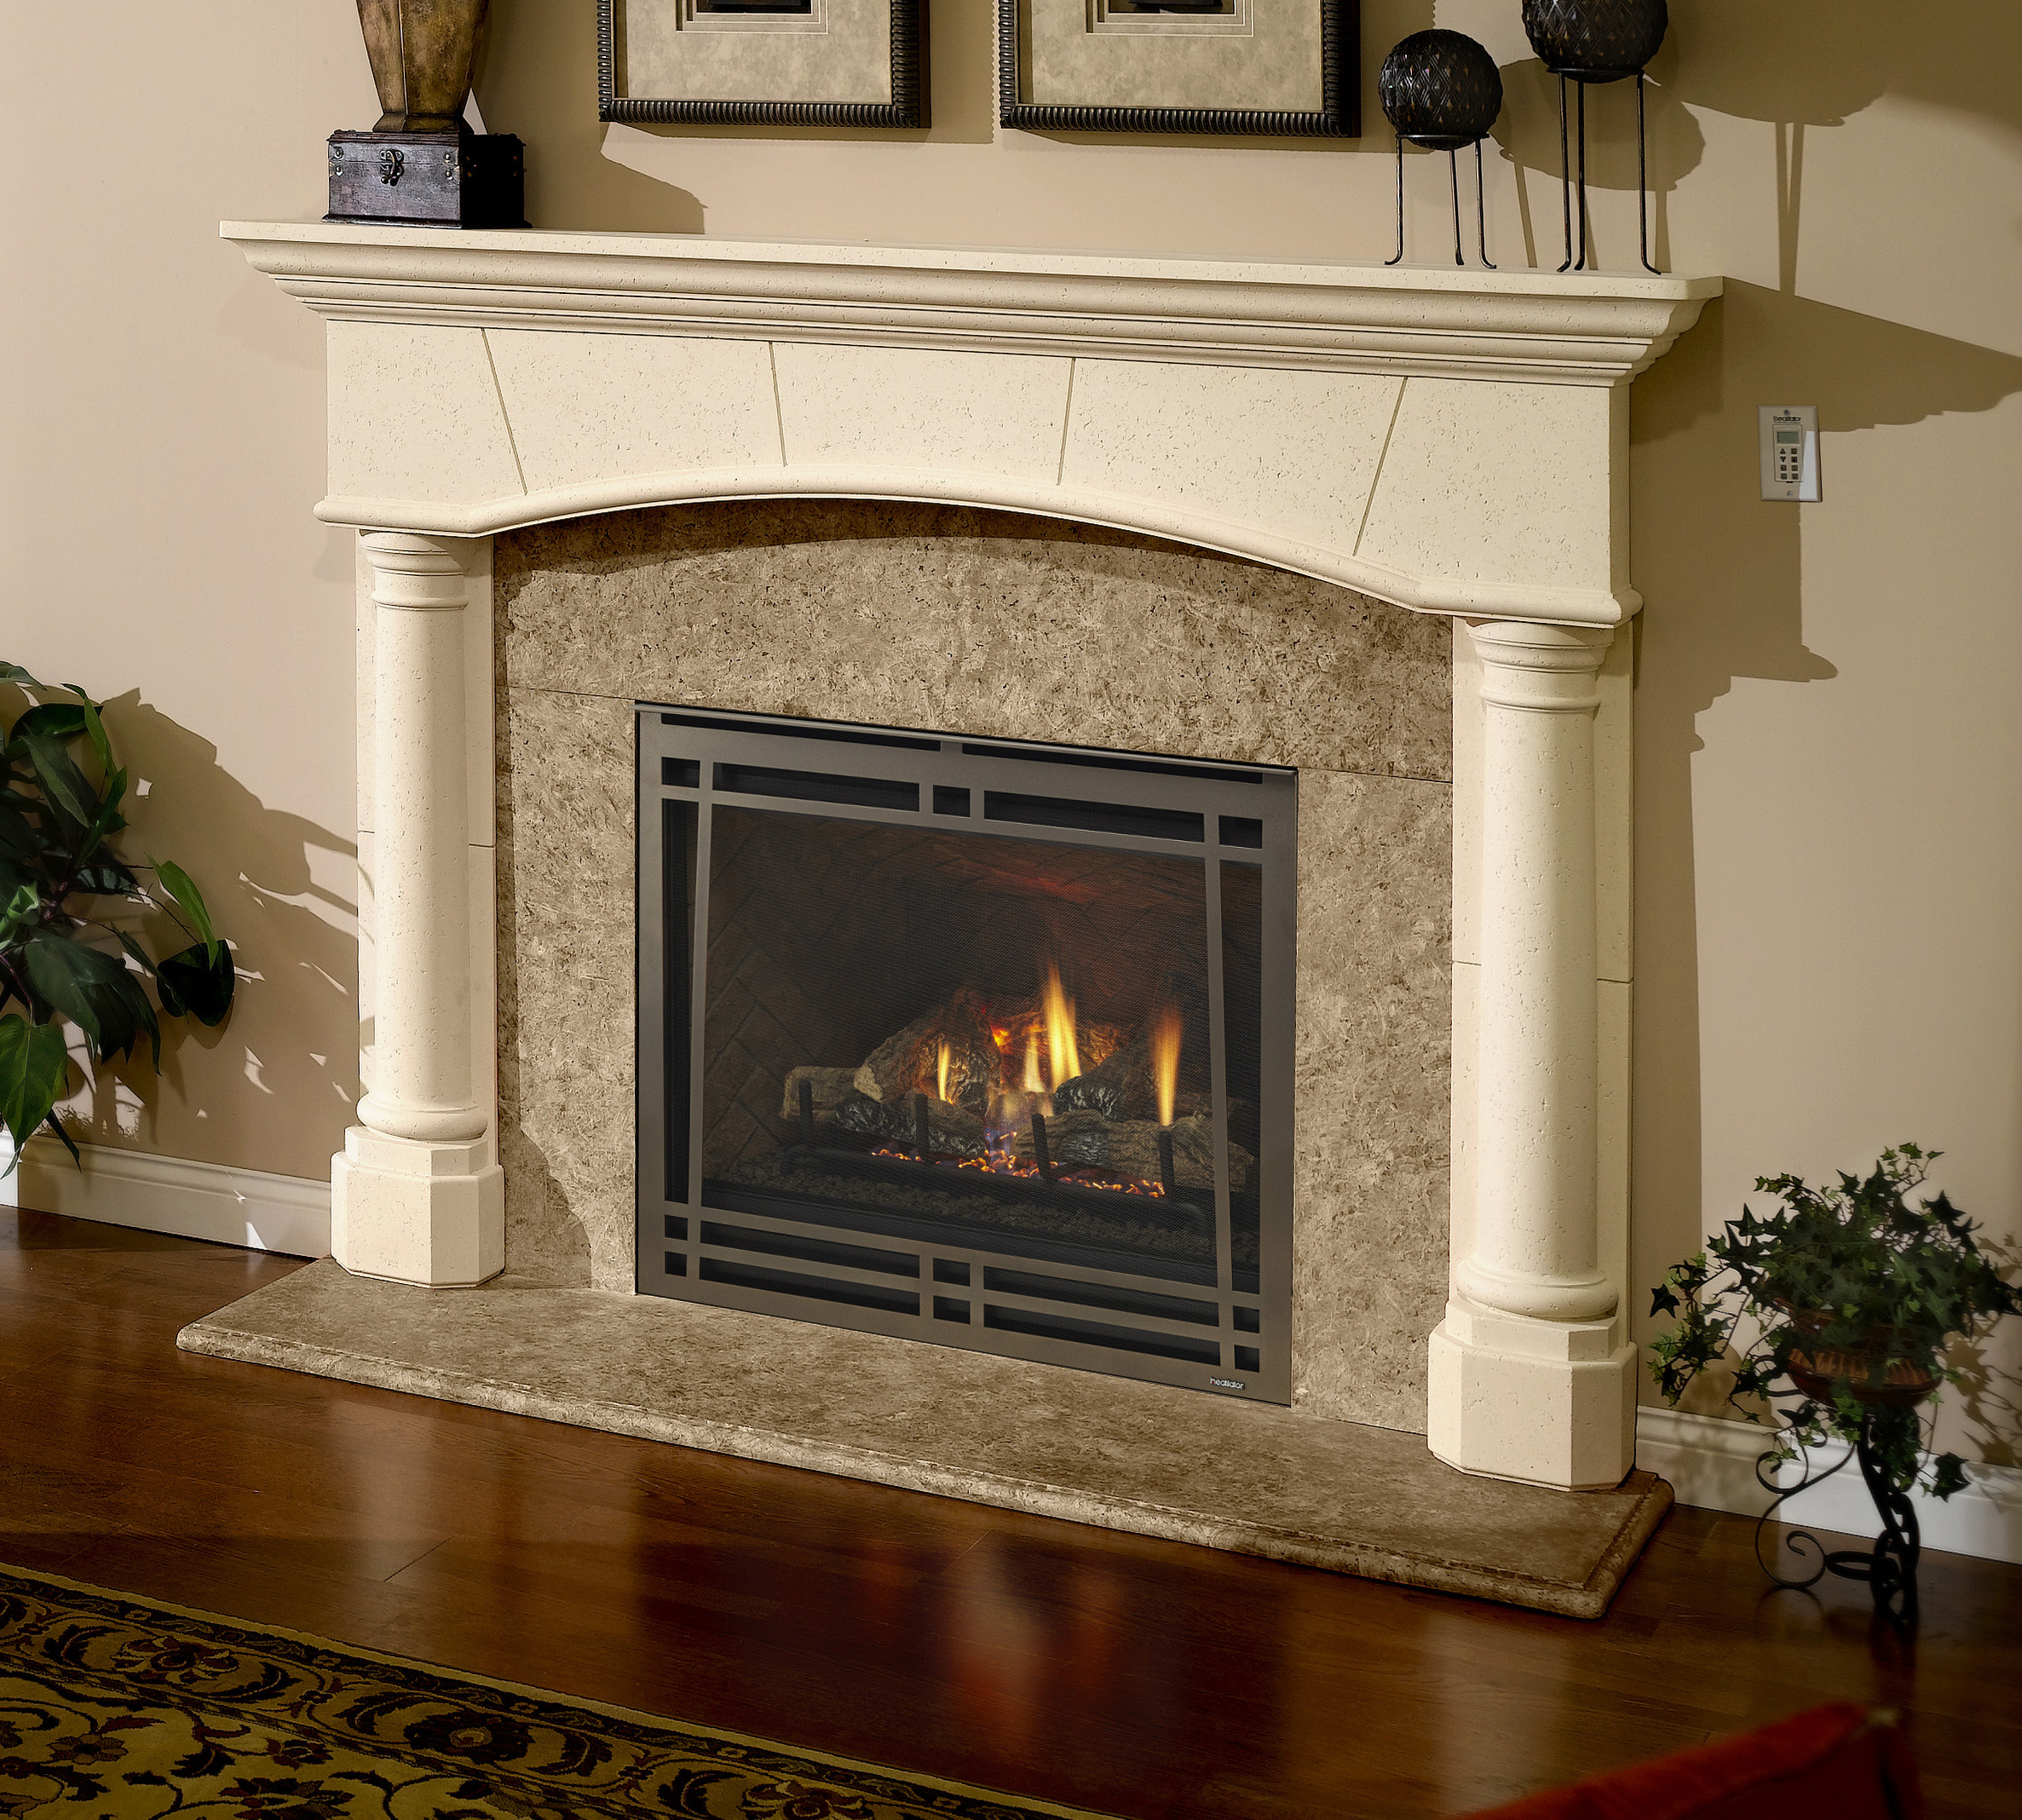 design art fireplace large feb column glo n hearth and gas fireplaces heat color flush graphics lighting unobstructed photo dulley a offers face installation clean heatilator view htm credit accent vent